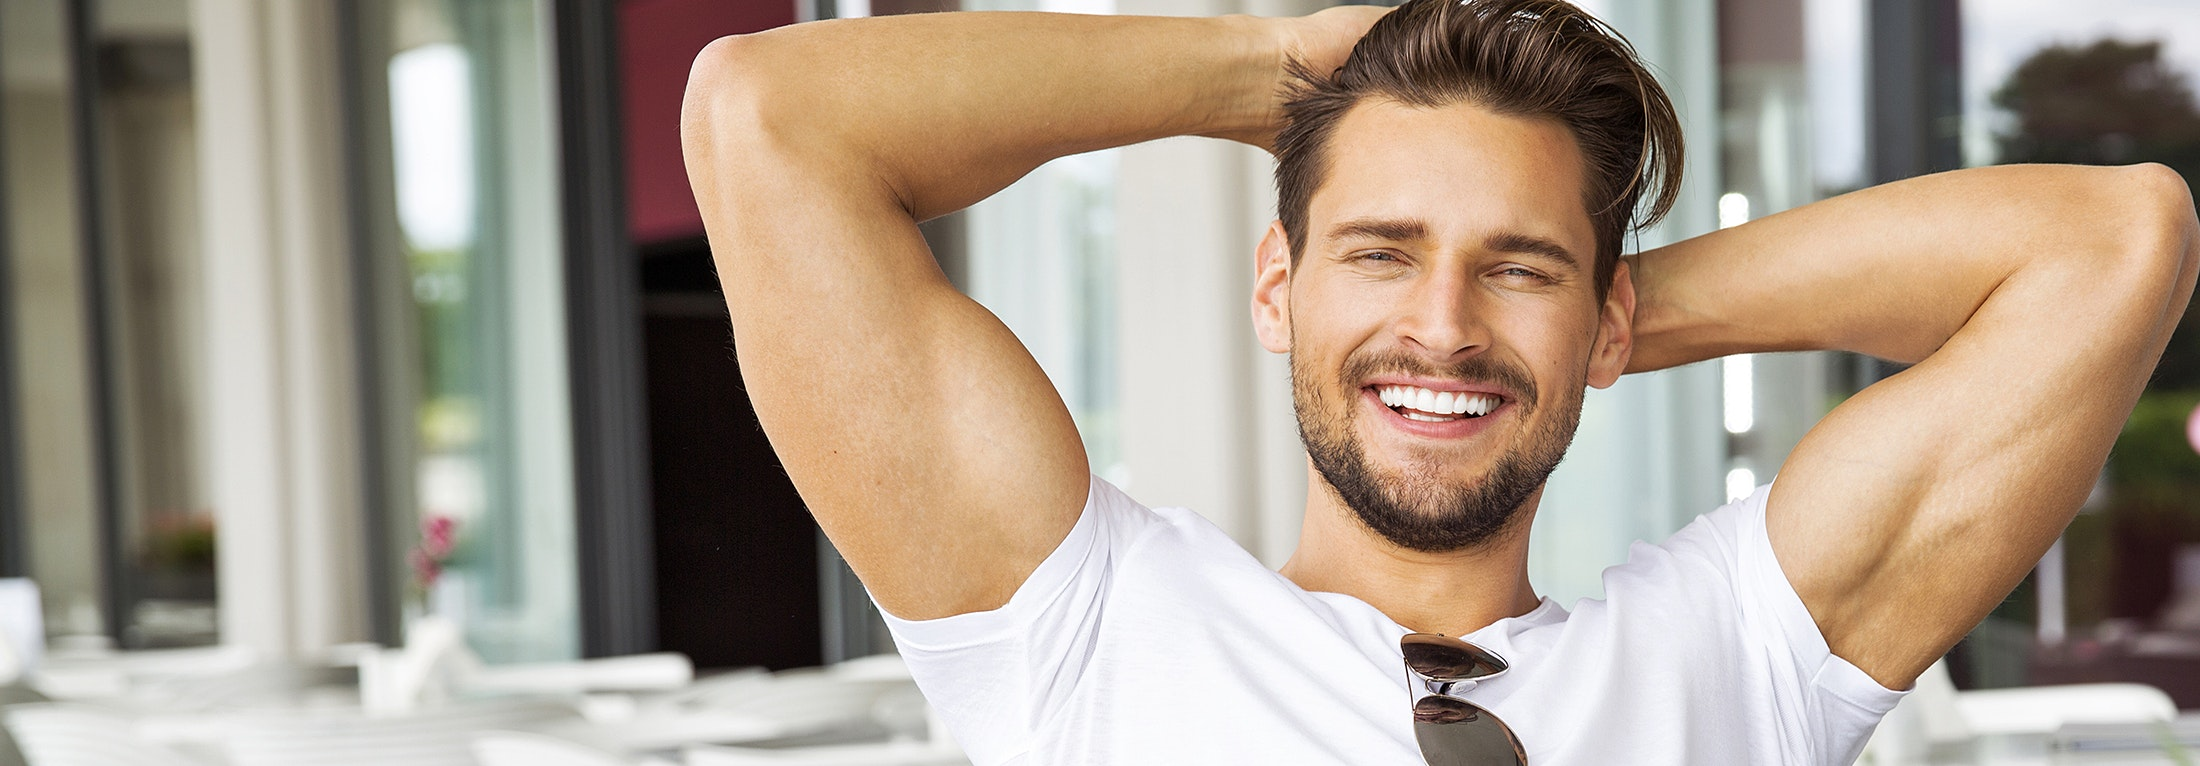 Handsome man smiling with his arms raised up behind his head